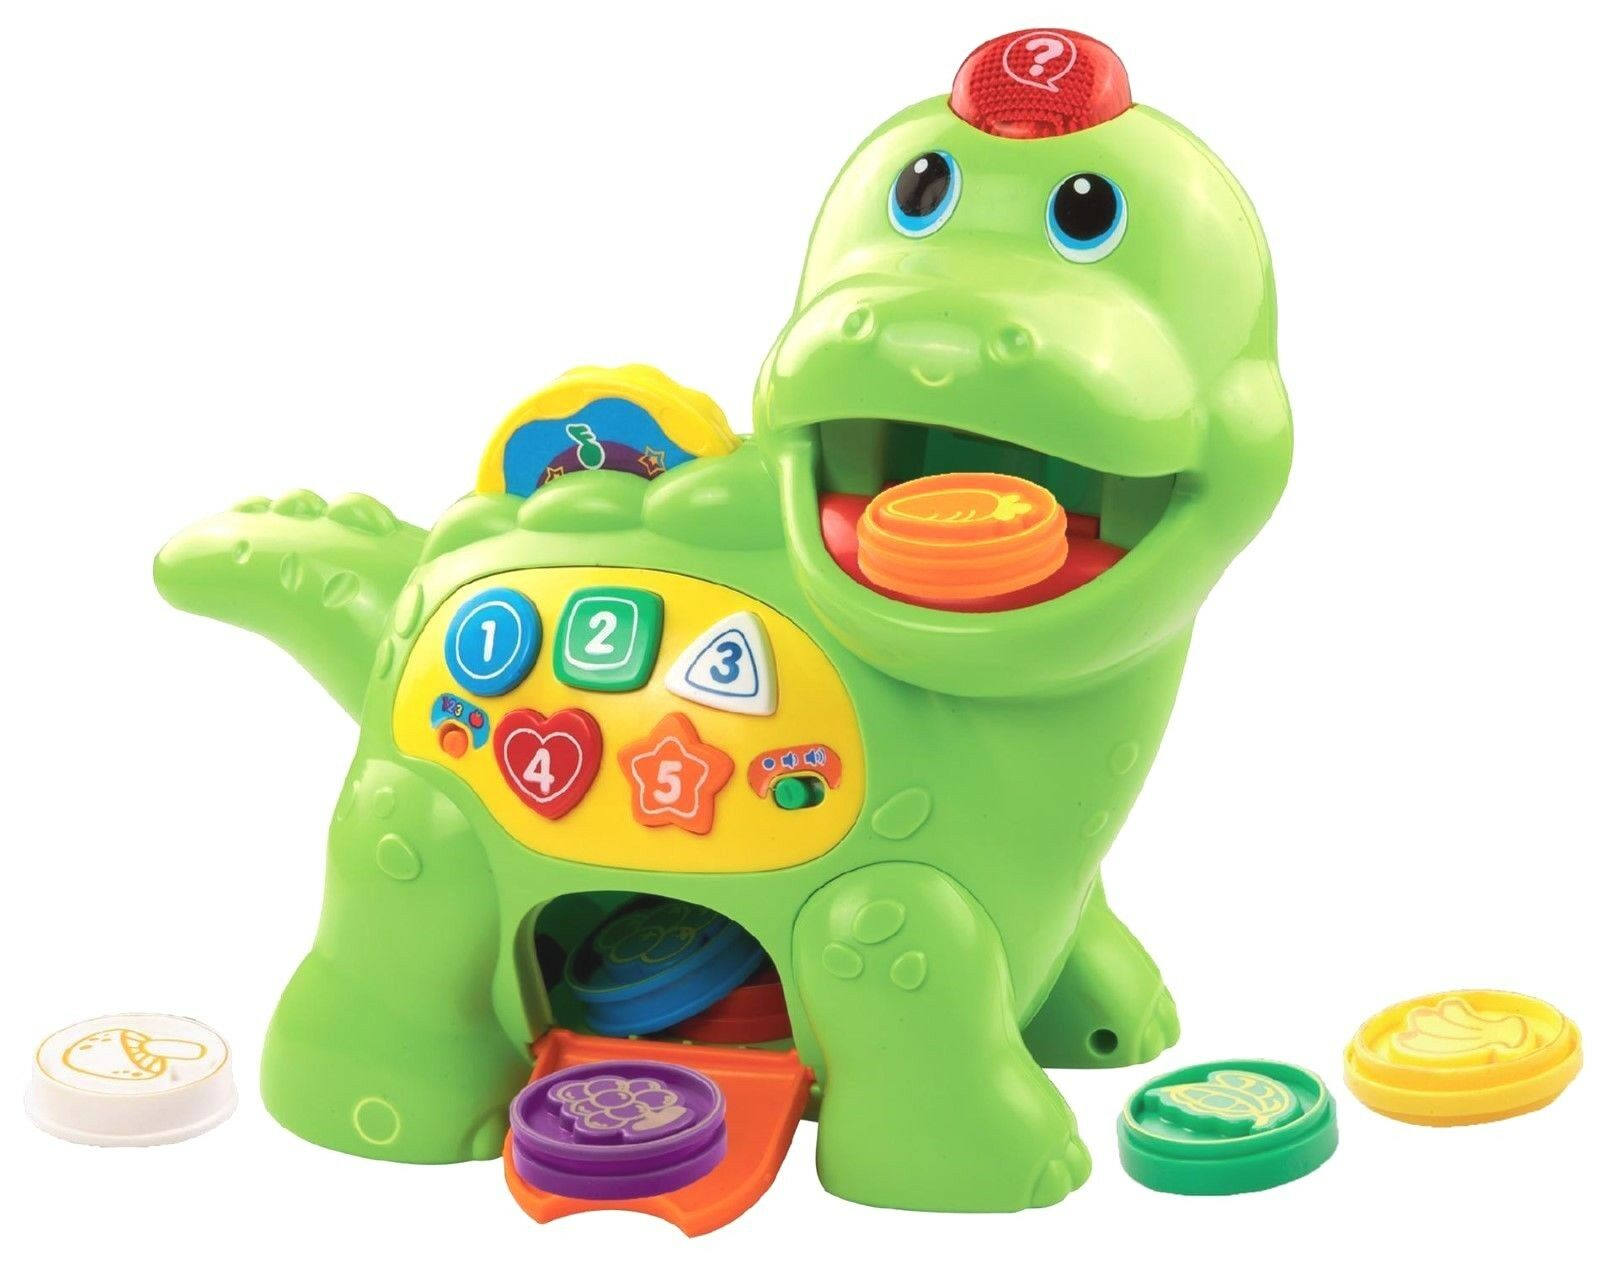 VTech Baby Feed Dino Toddler Baby First Learning Toy 130+ Songs Birthday Gift